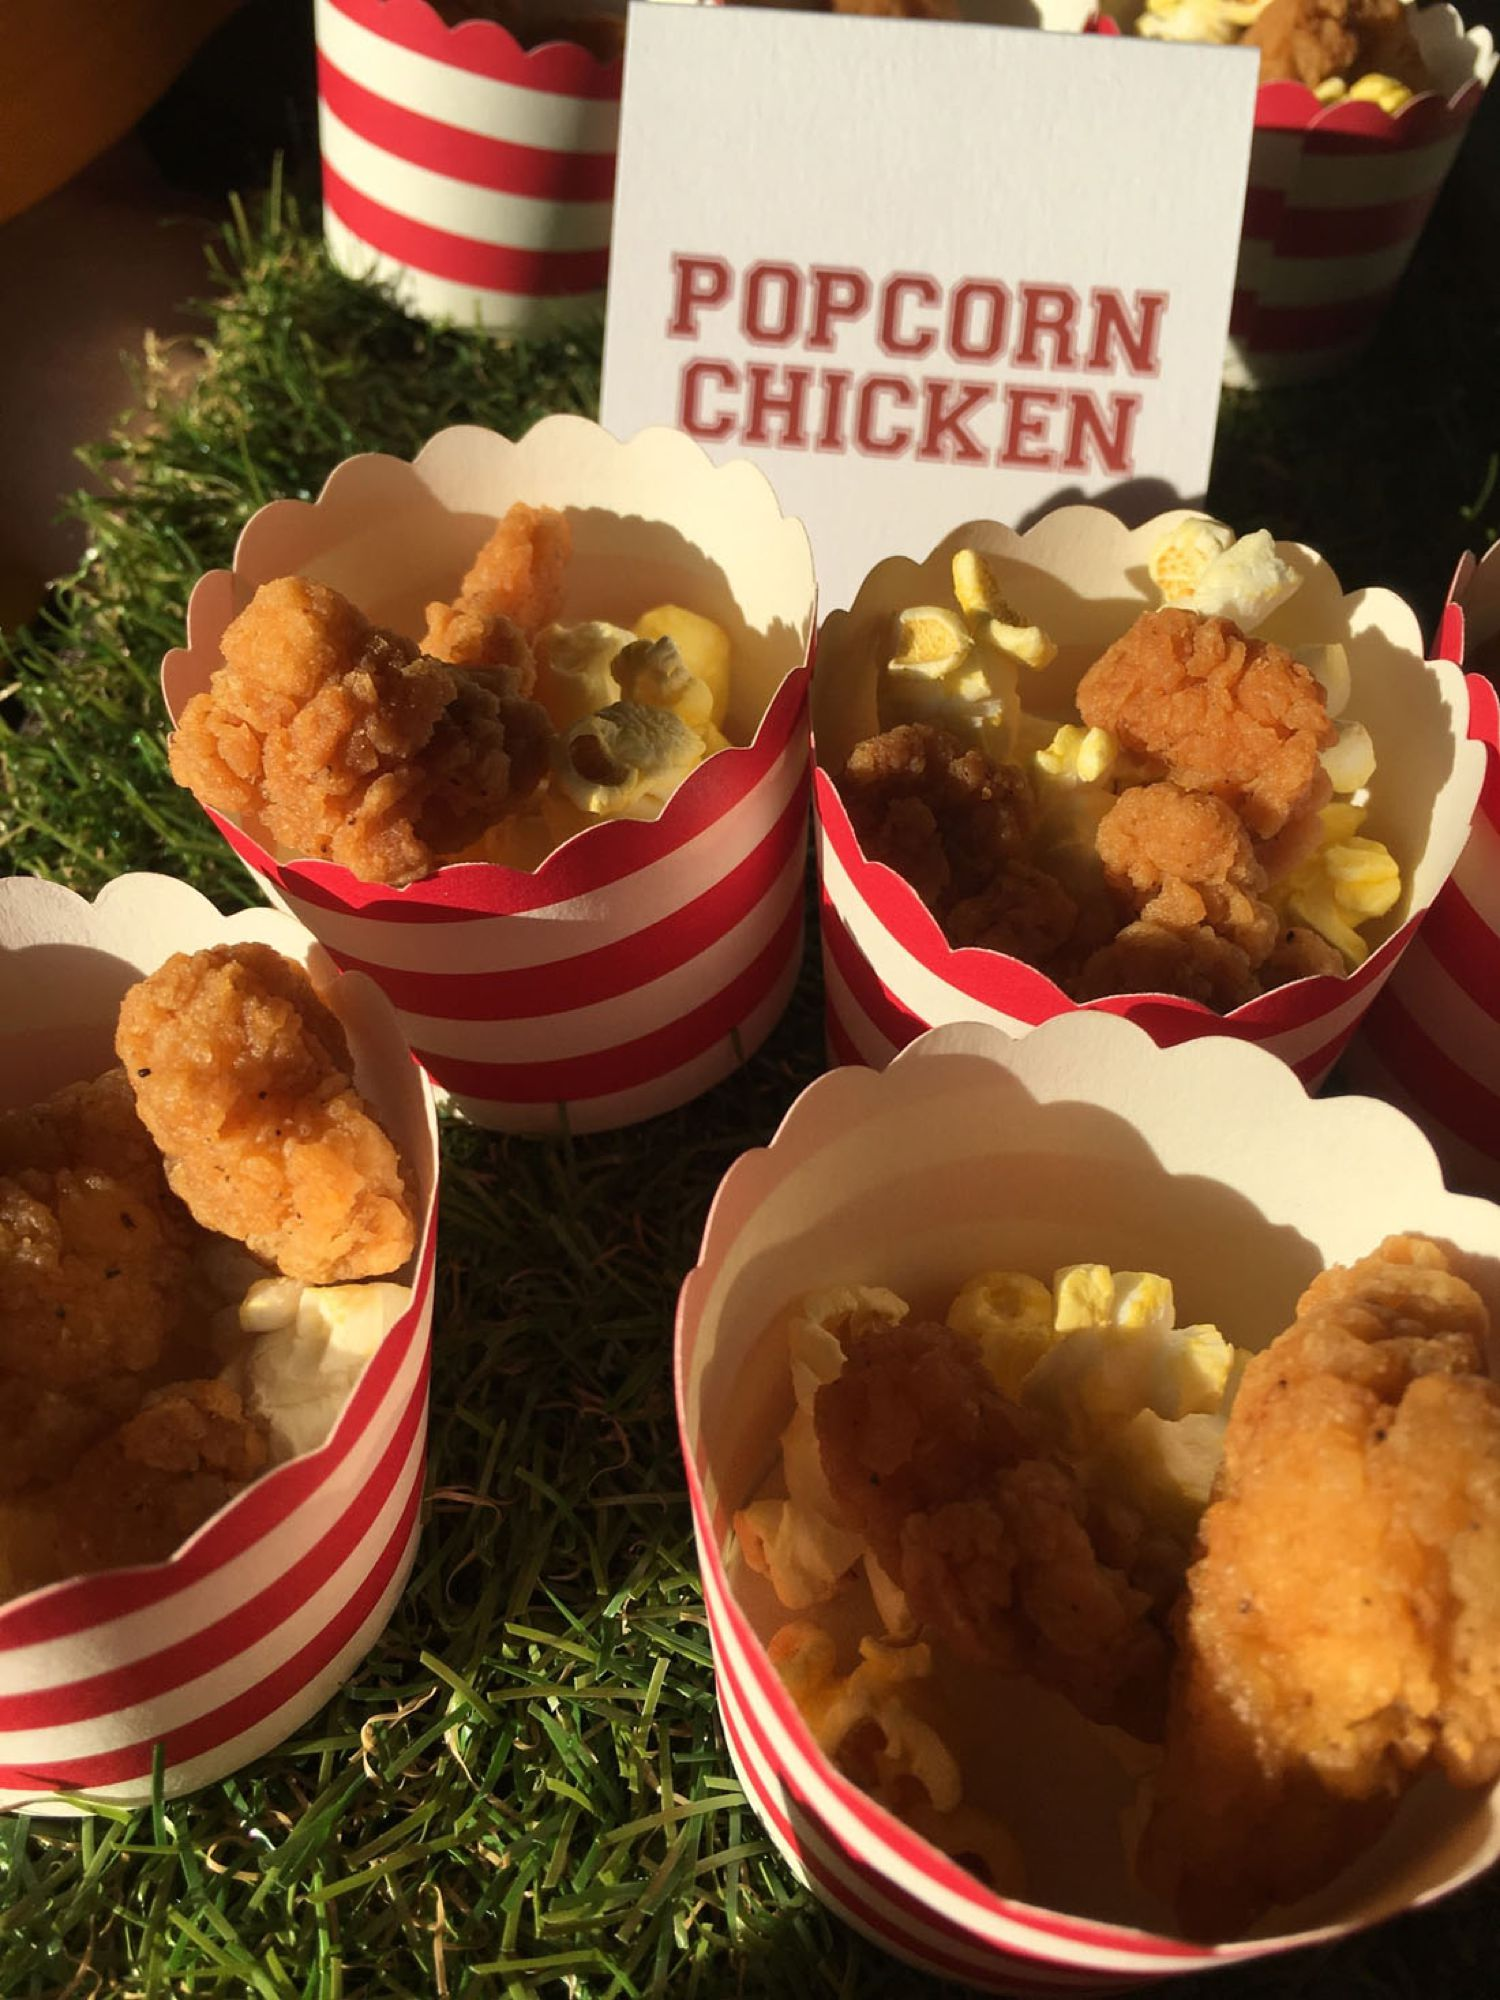 Mitzvah Catering Sports Theme Popcorn Chicken